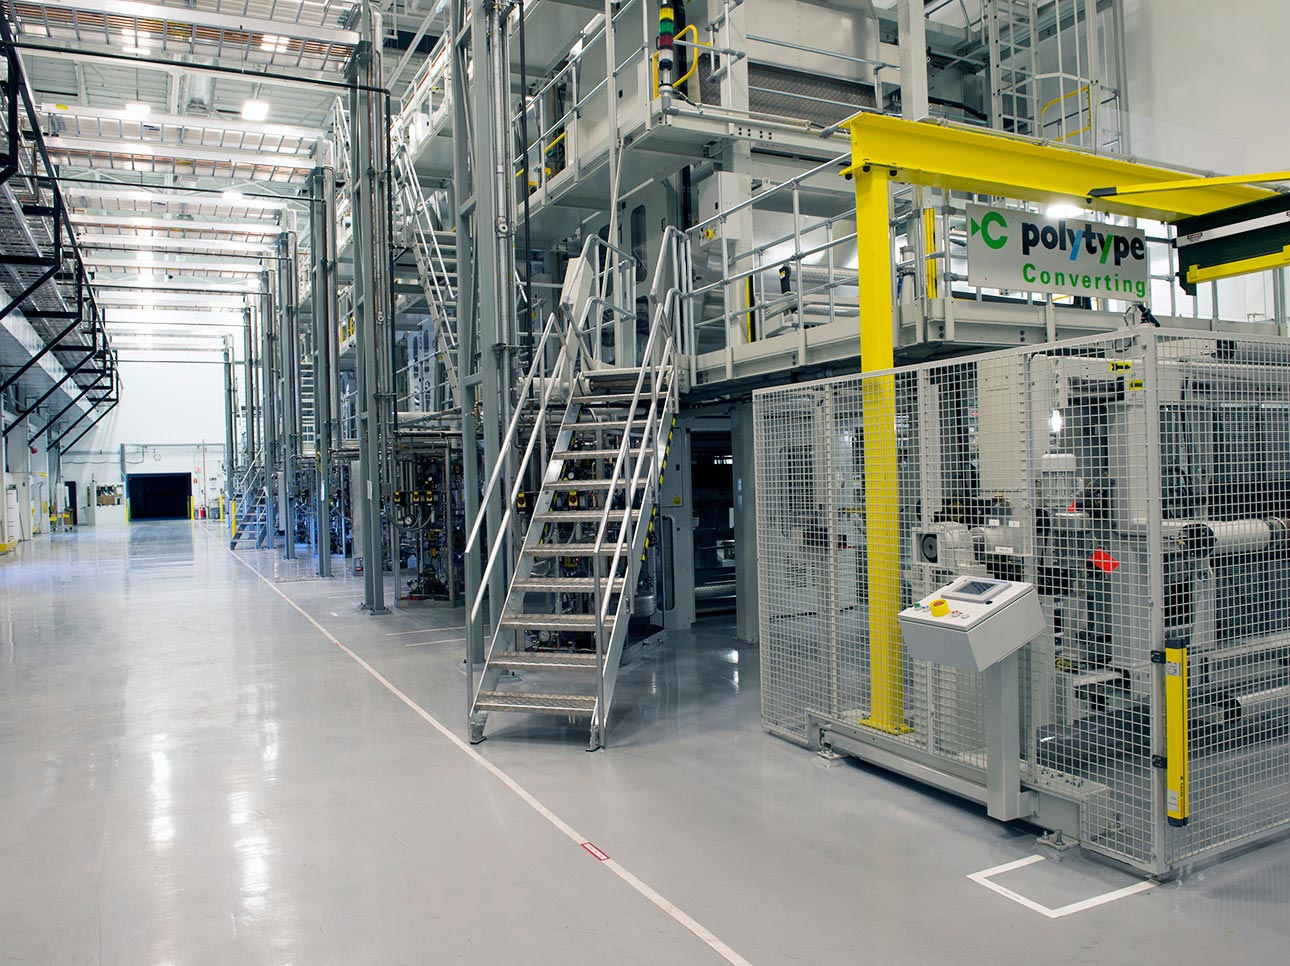 Interior of an industrial manufacturing facility